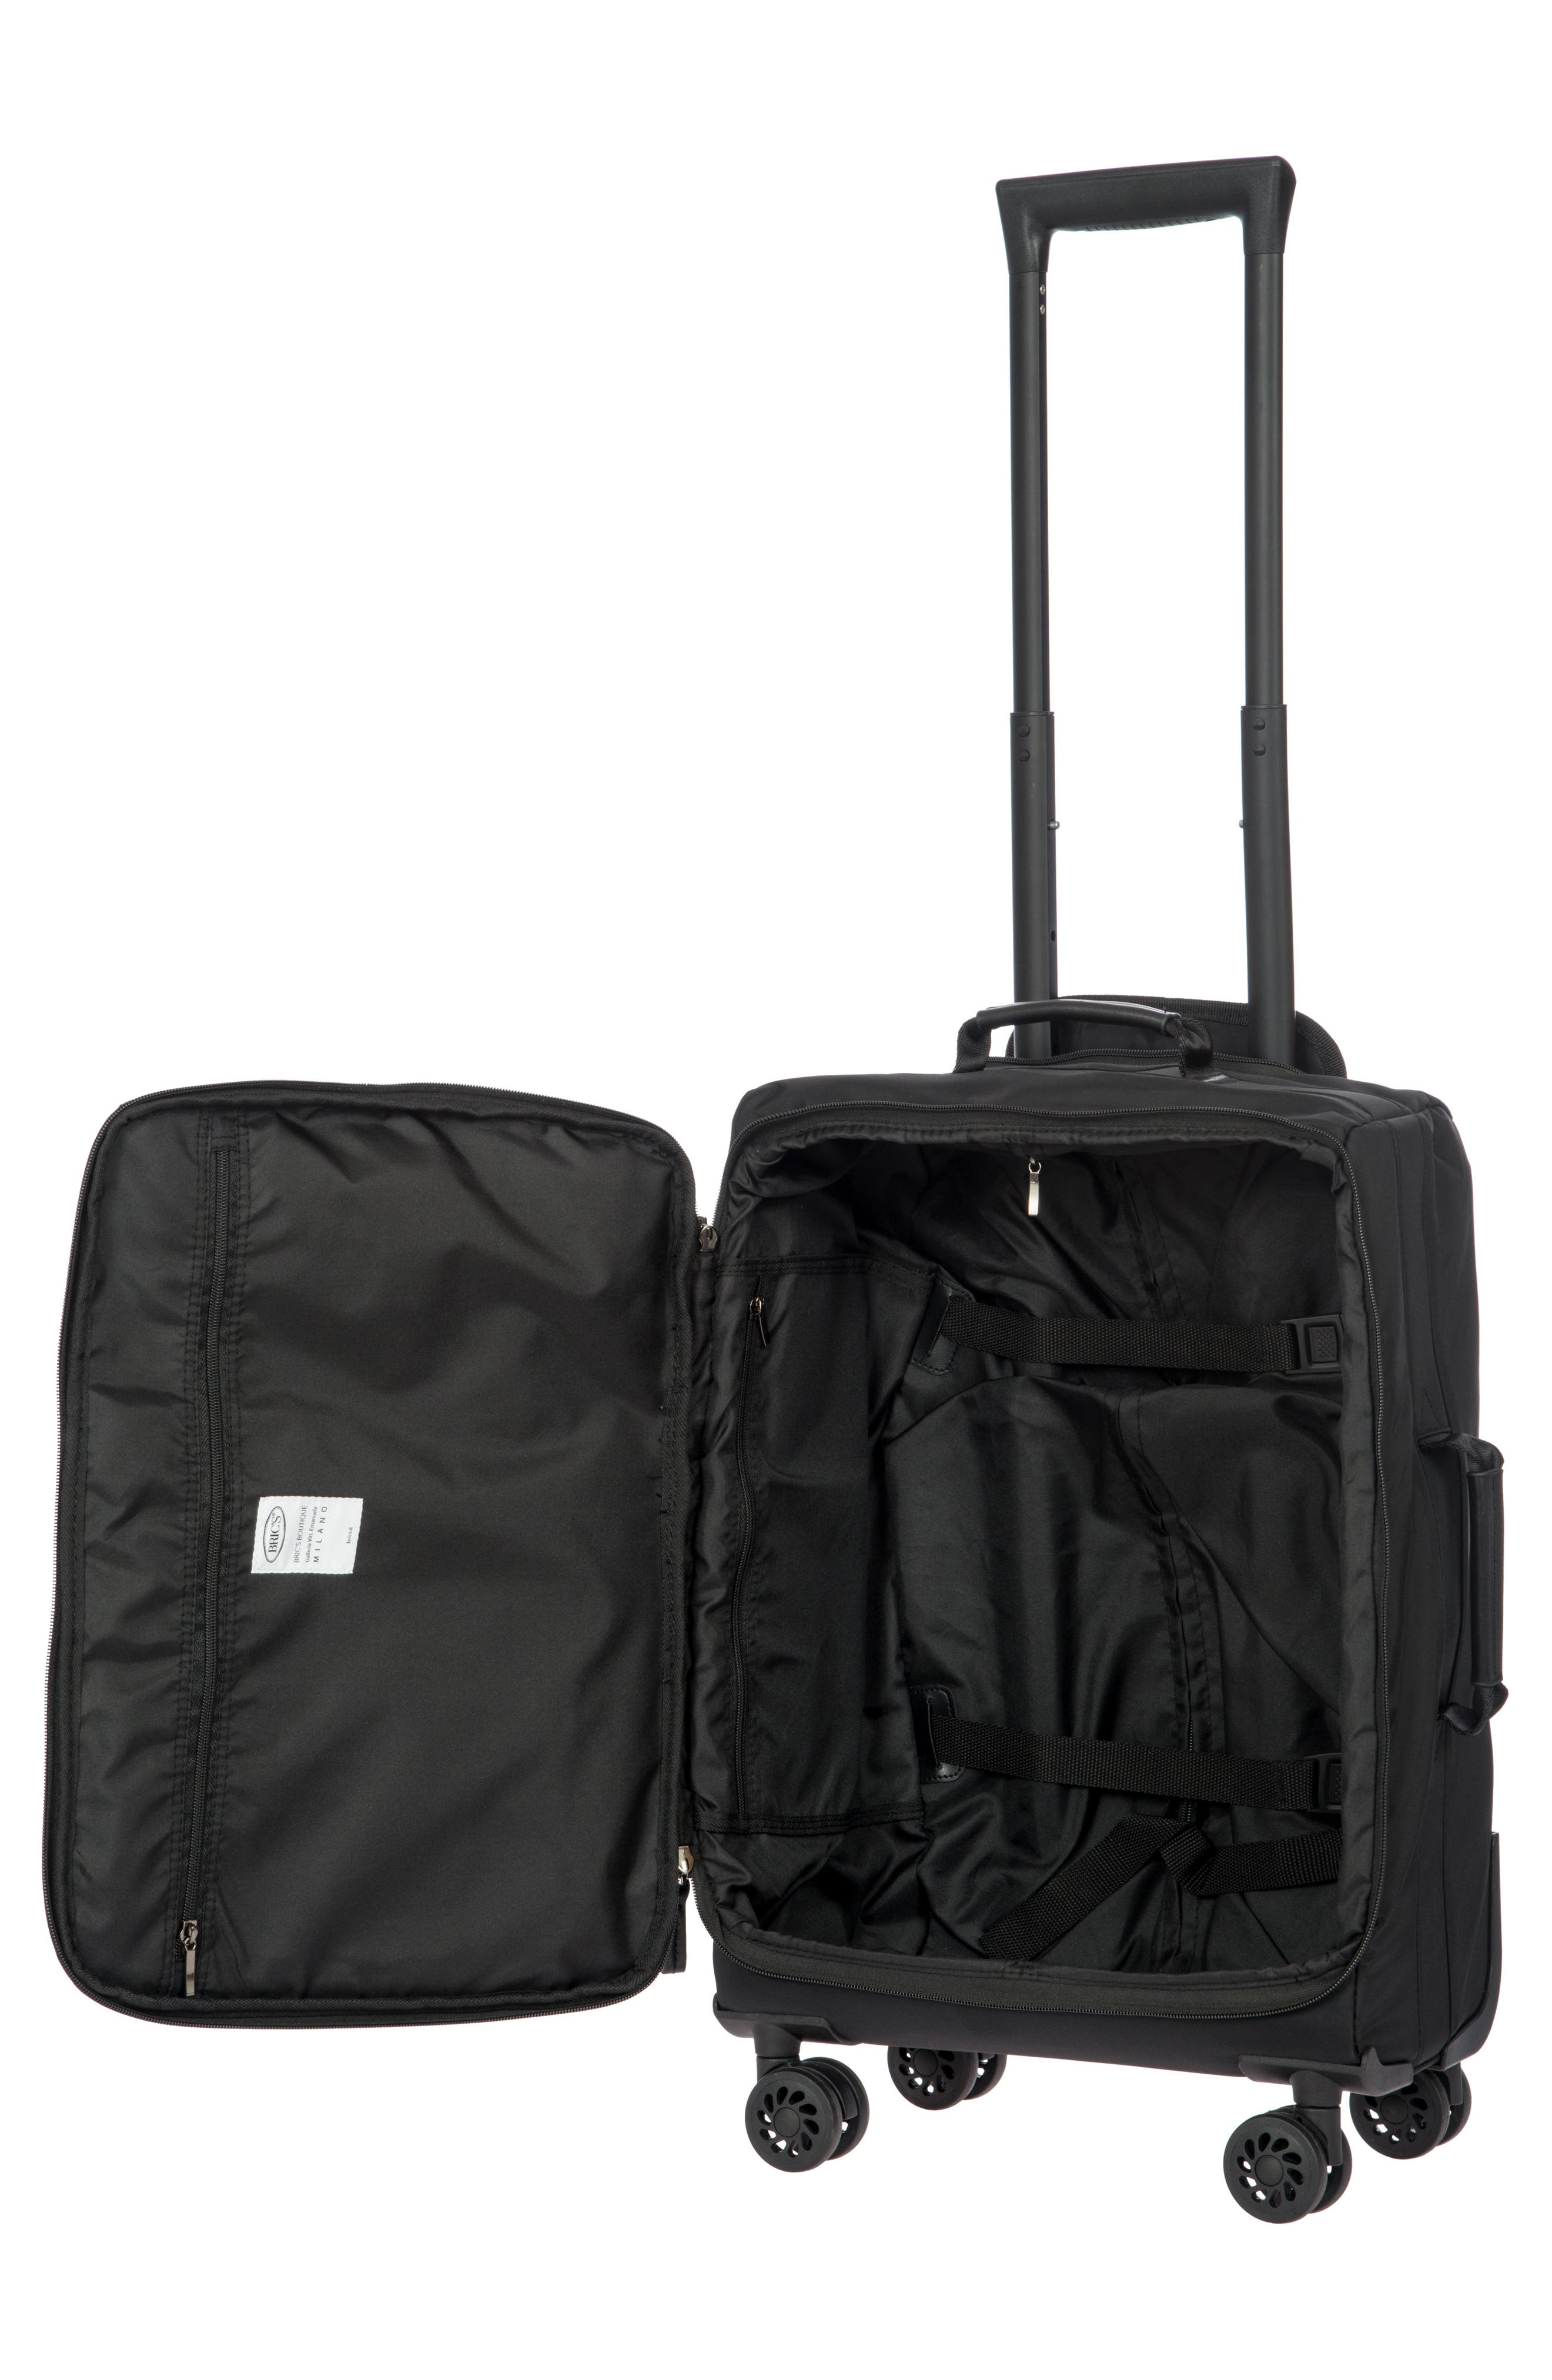 X-Bag 21-Inch Spinner Carry-On,                             Alternate thumbnail 2, color,                             BLACK/ BLACK